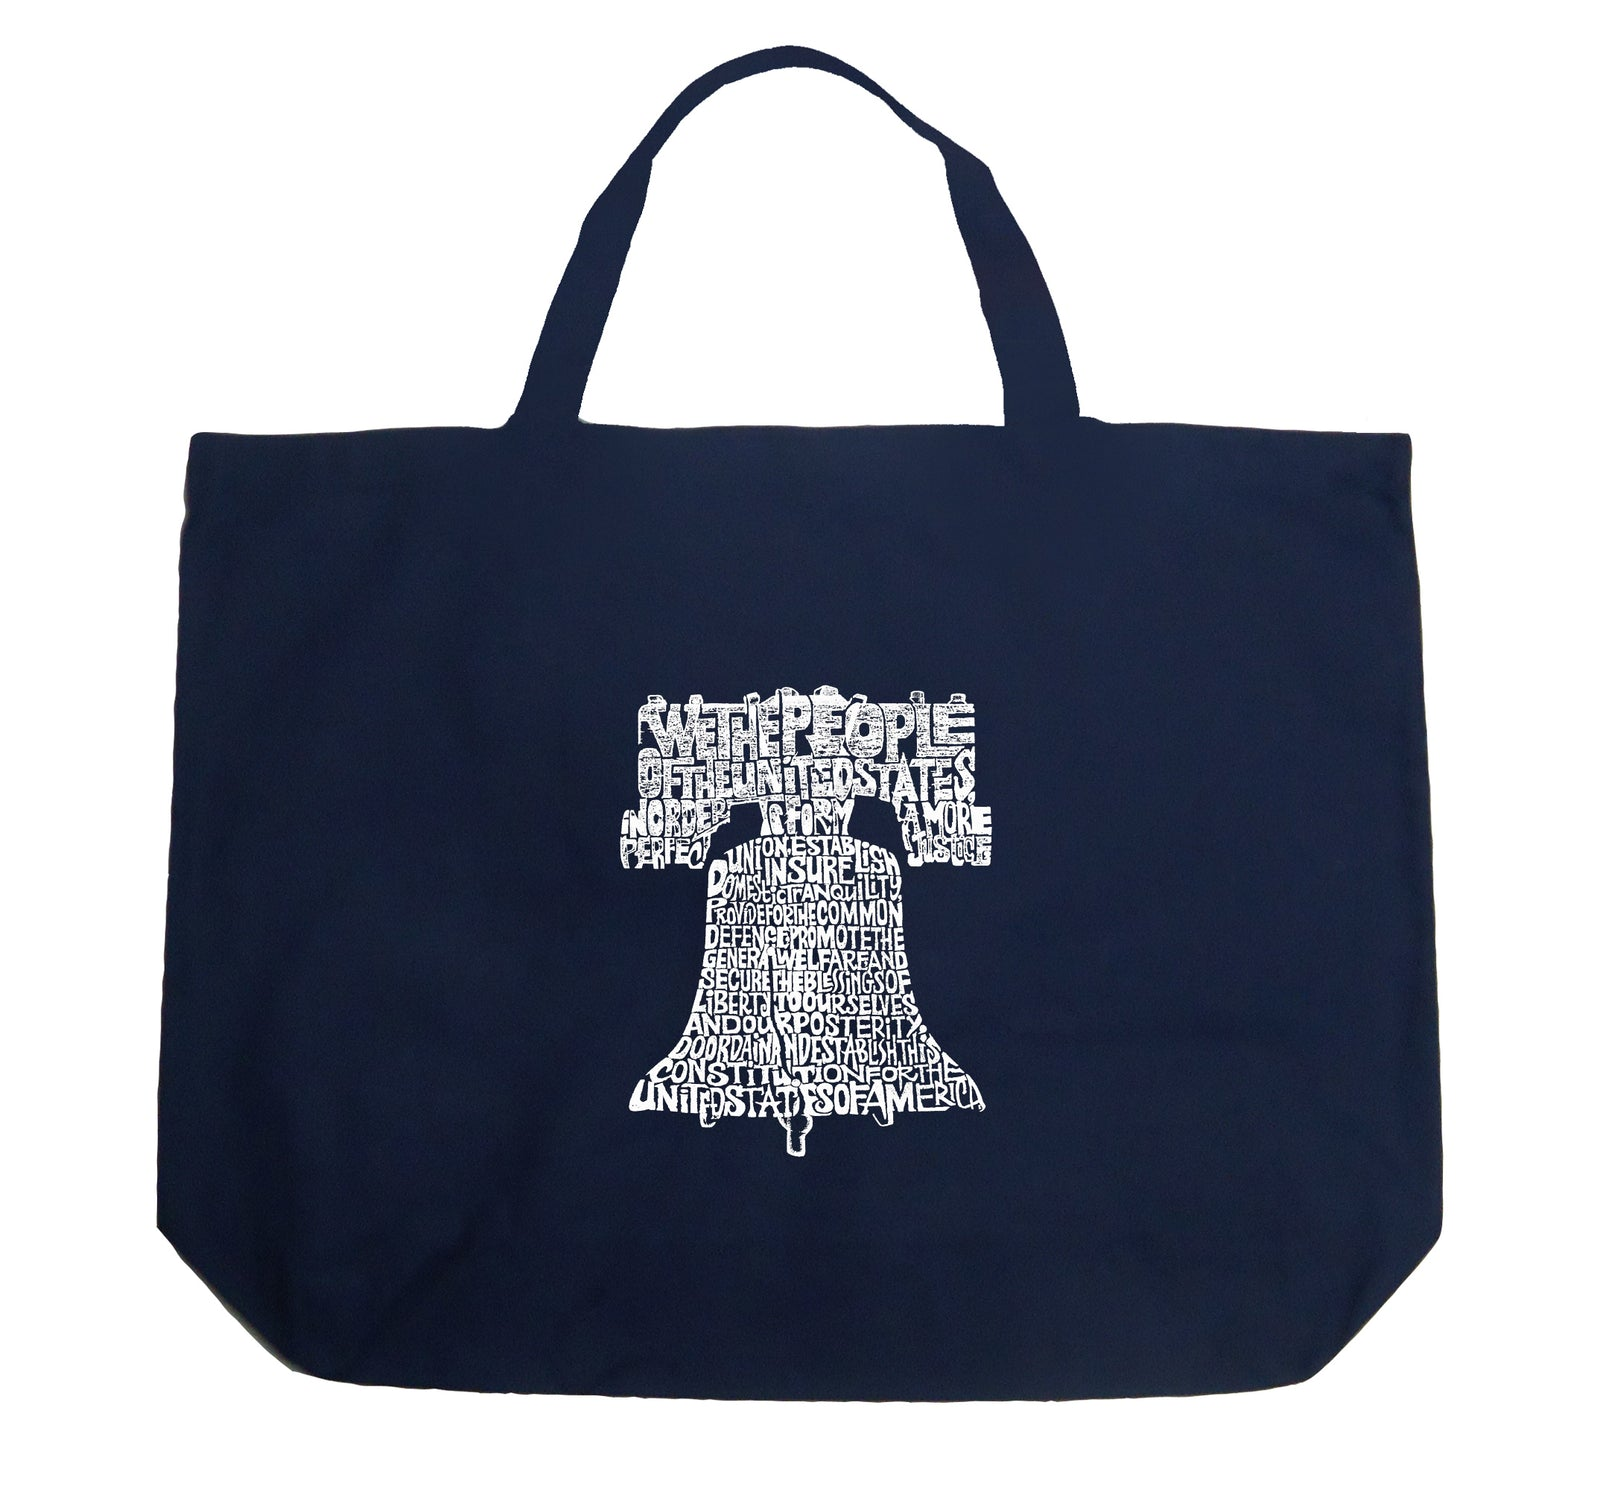 Los Angeles Pop Art Large Tote Bag - Liberty Bell